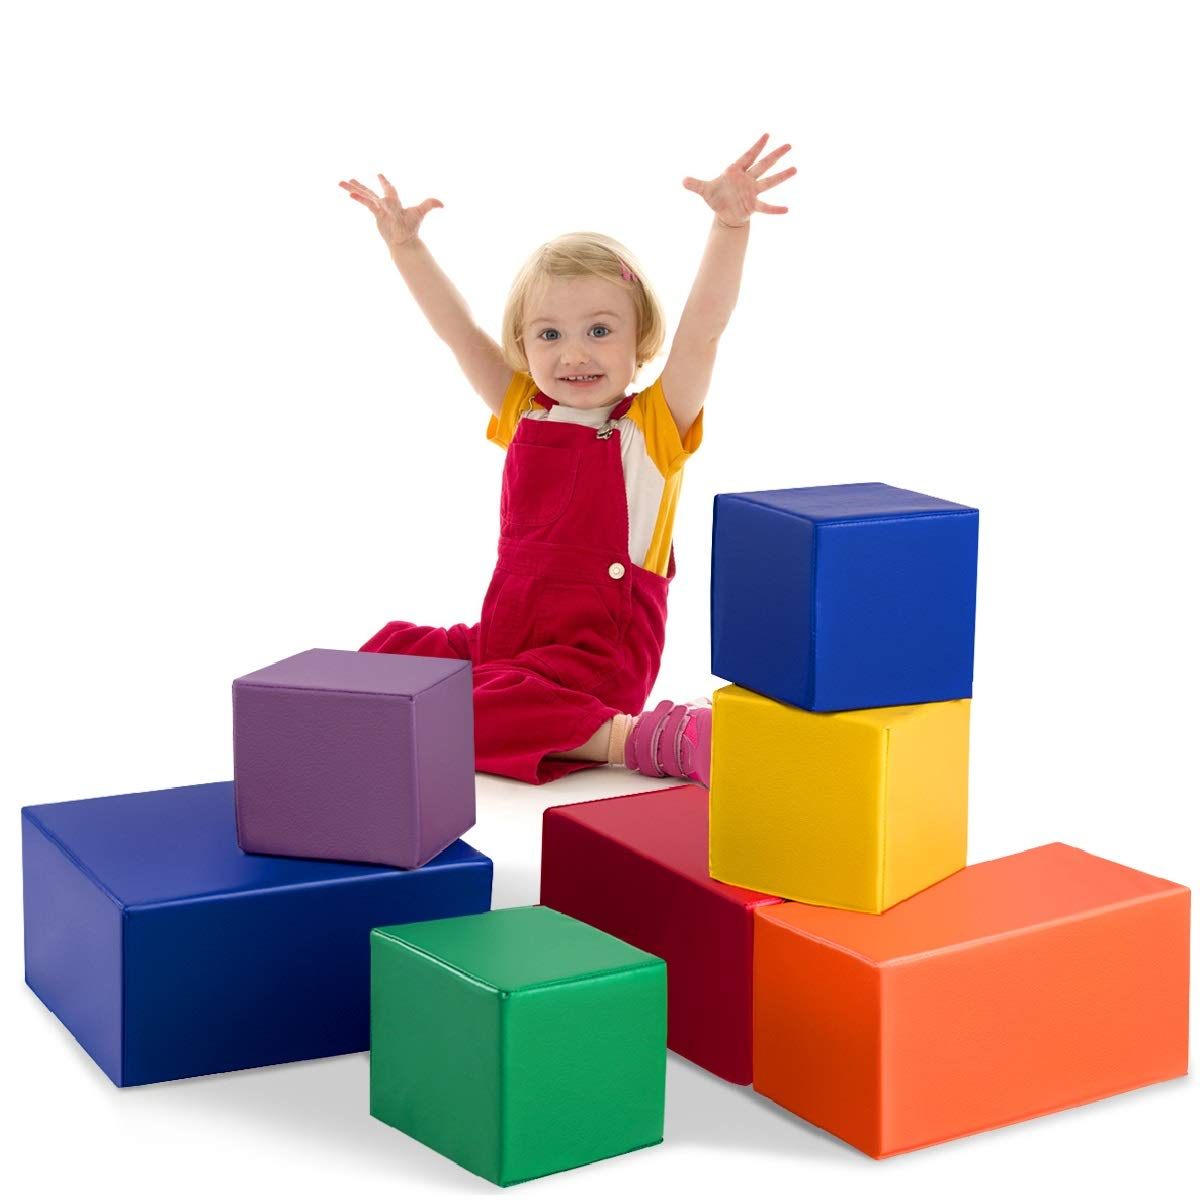 Costzon Soft Blocks, Toddler Foam Block Playset for Safe Active Play and Building, Indoor Climbers Stacking Play Set Learning Toys for Toddlers, Baby, Kids and Preschooler (7-Piece, 6 Color)